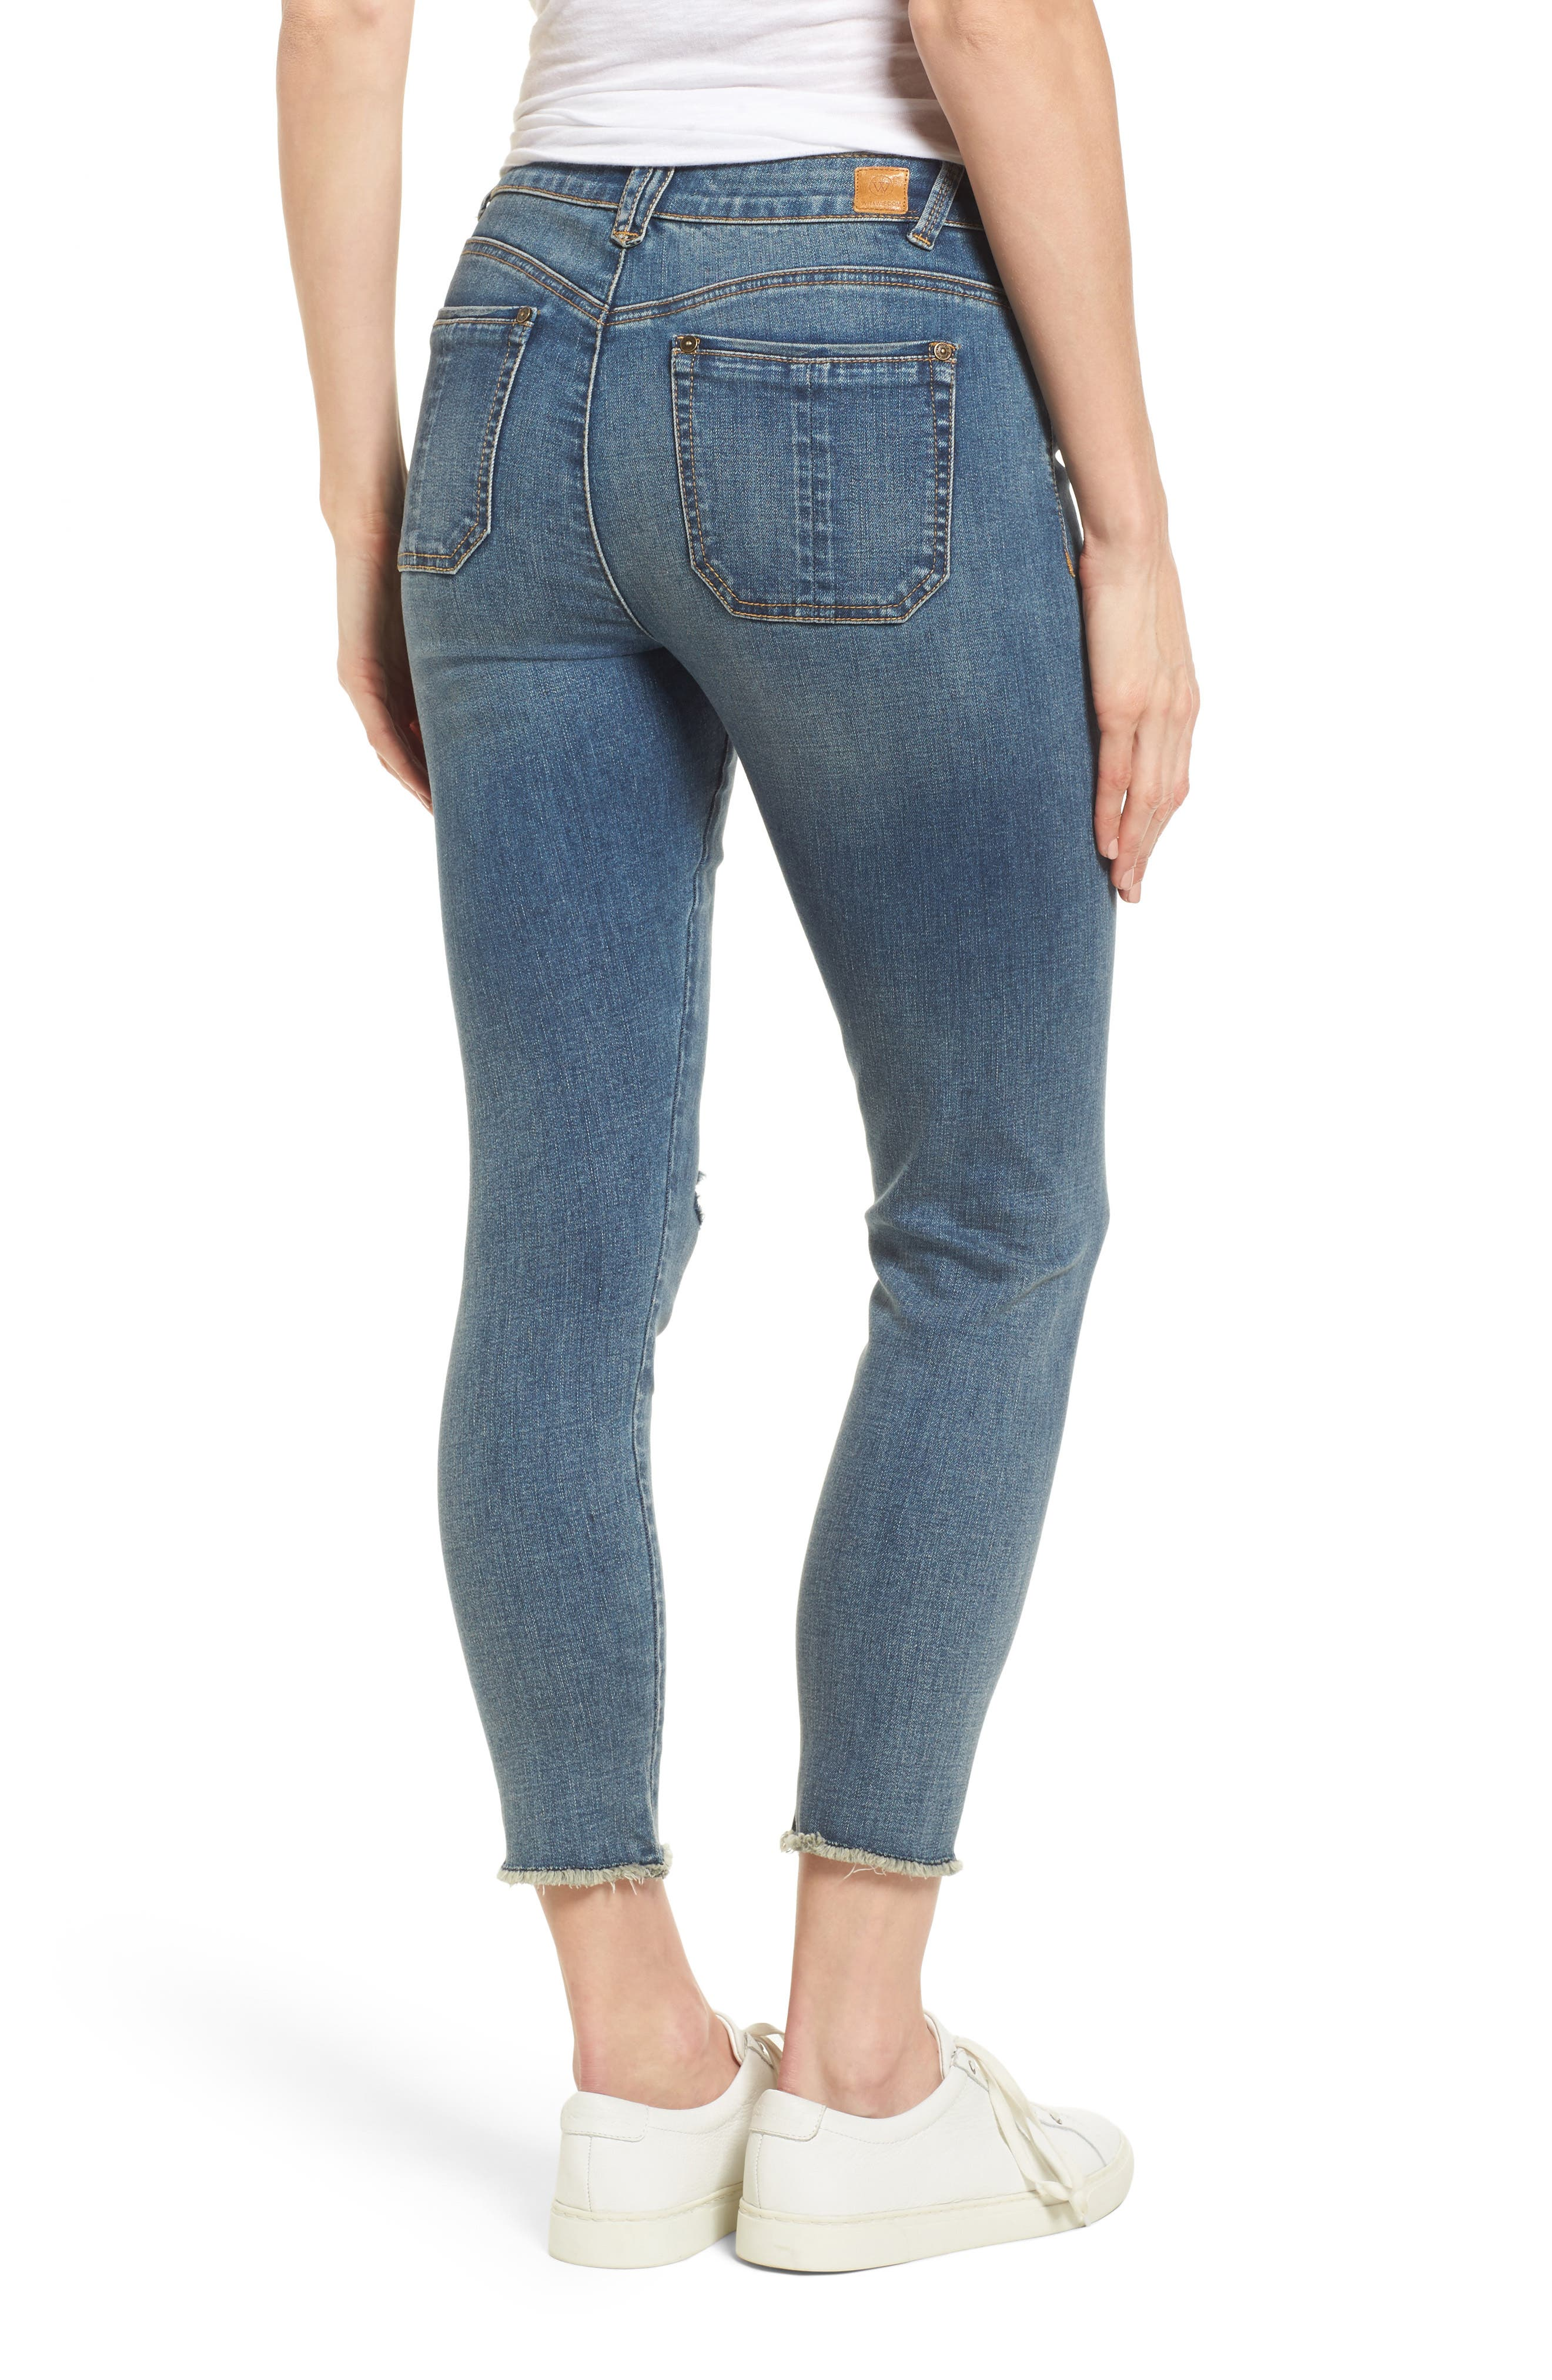 Alternate Image 2  - Wit & Wisdom Ripped Seamless Ankle Jeans (Nordstrom Exclusive) (Regular & Petite)